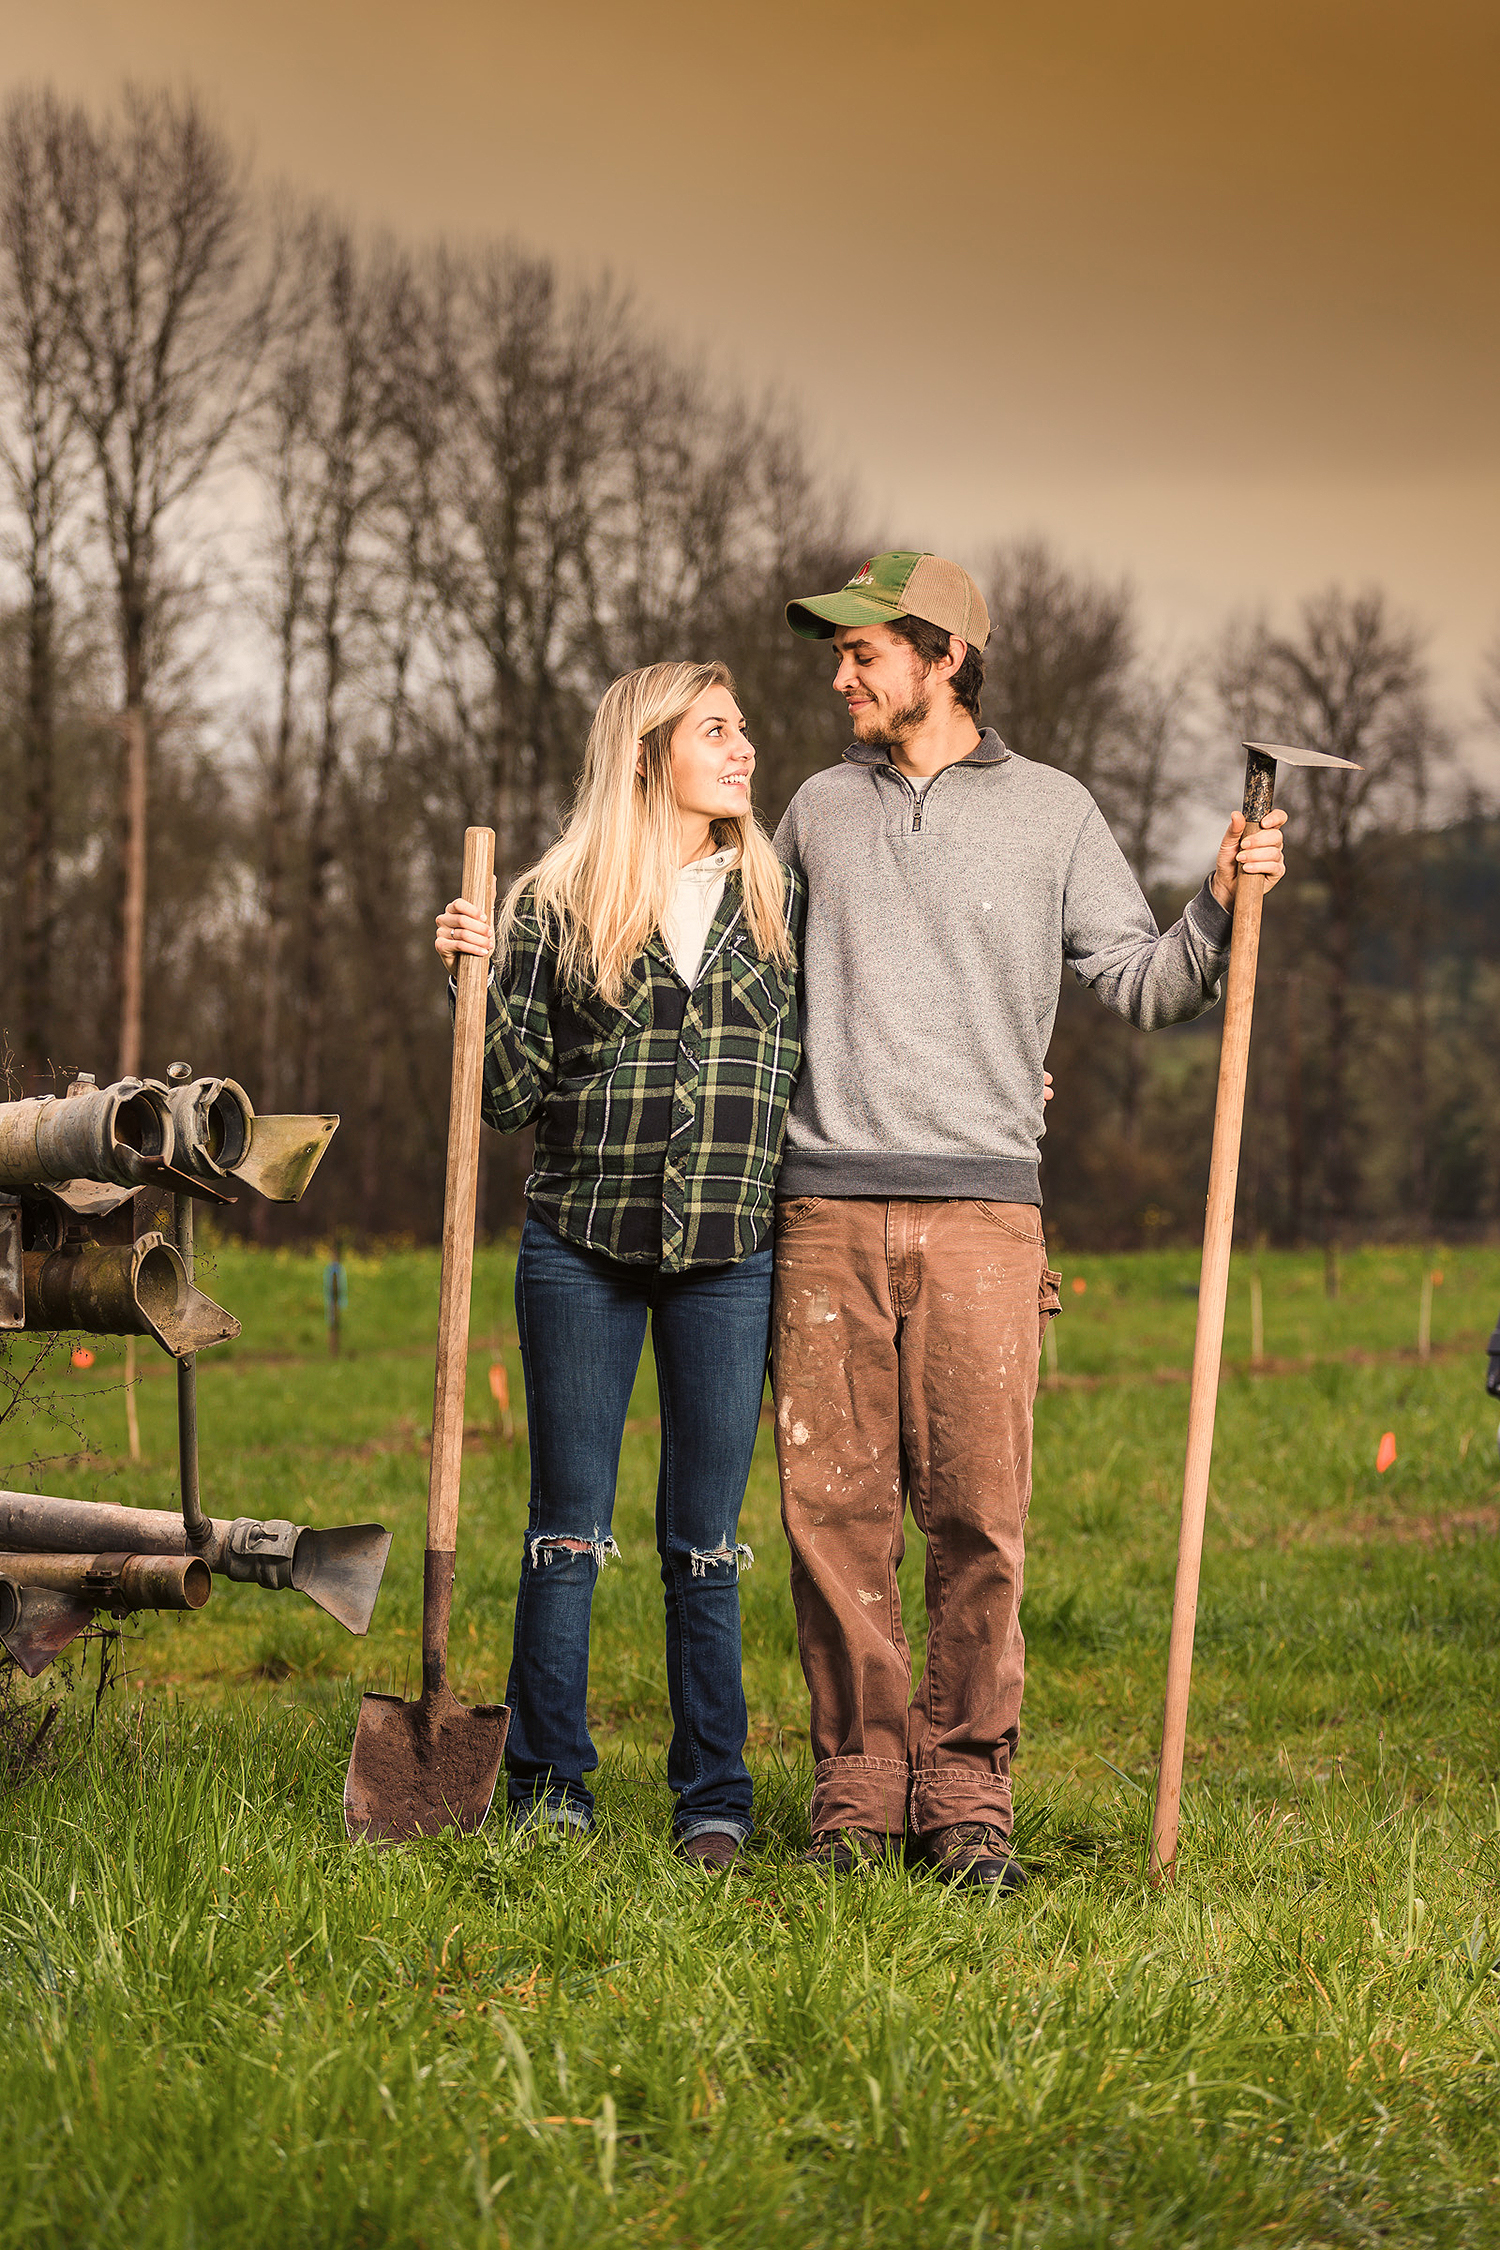 Erika Wolfe and Rylan Guillen are among several young farmers breaking ground in the Umpqua Valley.